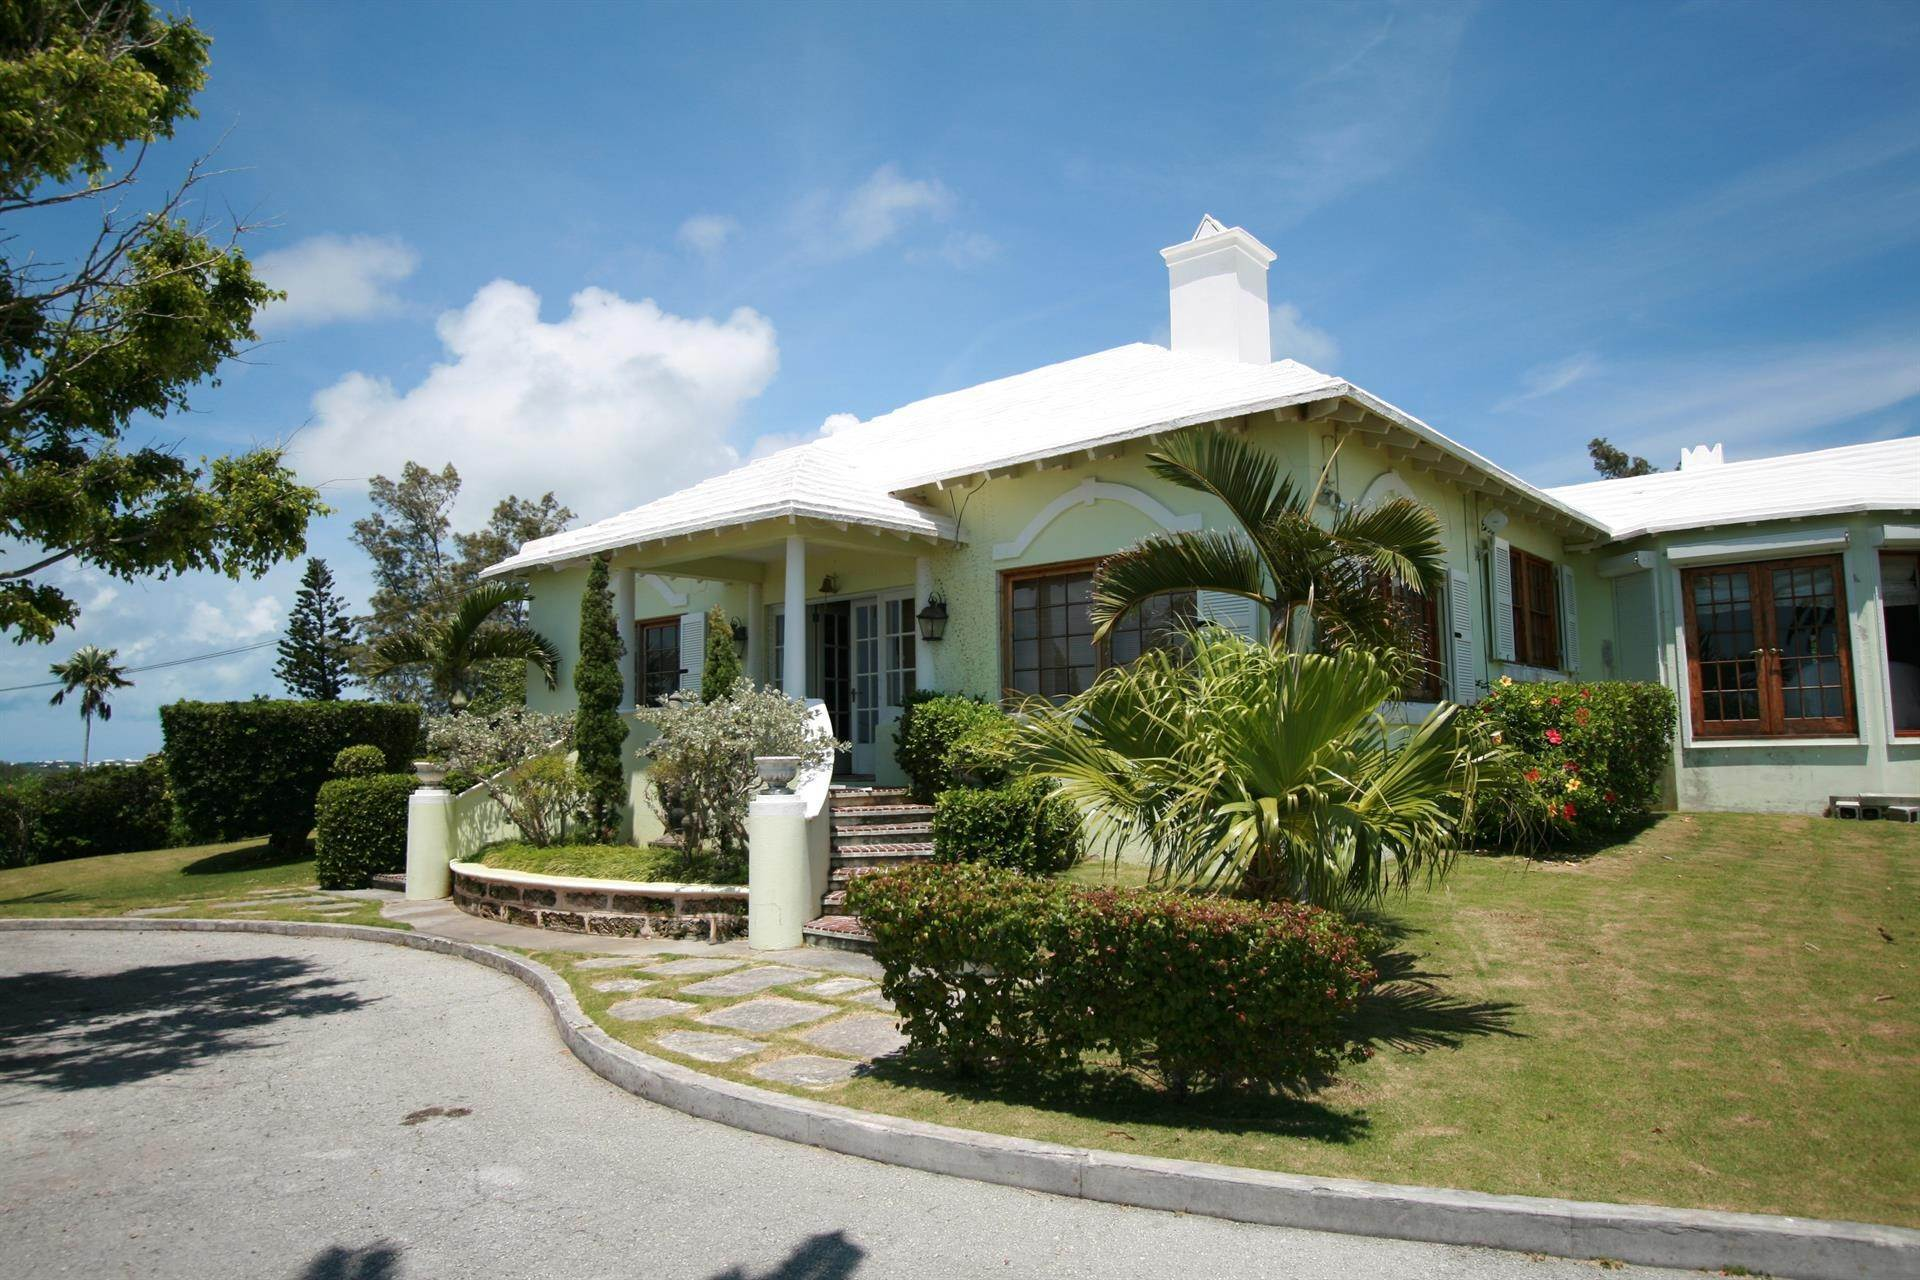 12. Vid Vattnet för Försäljning vid Heron Hill On The Great Sound Heron Hill On The Great Sound, 31 Riddell's Bay Road,Bermuda – Sinclair Realty